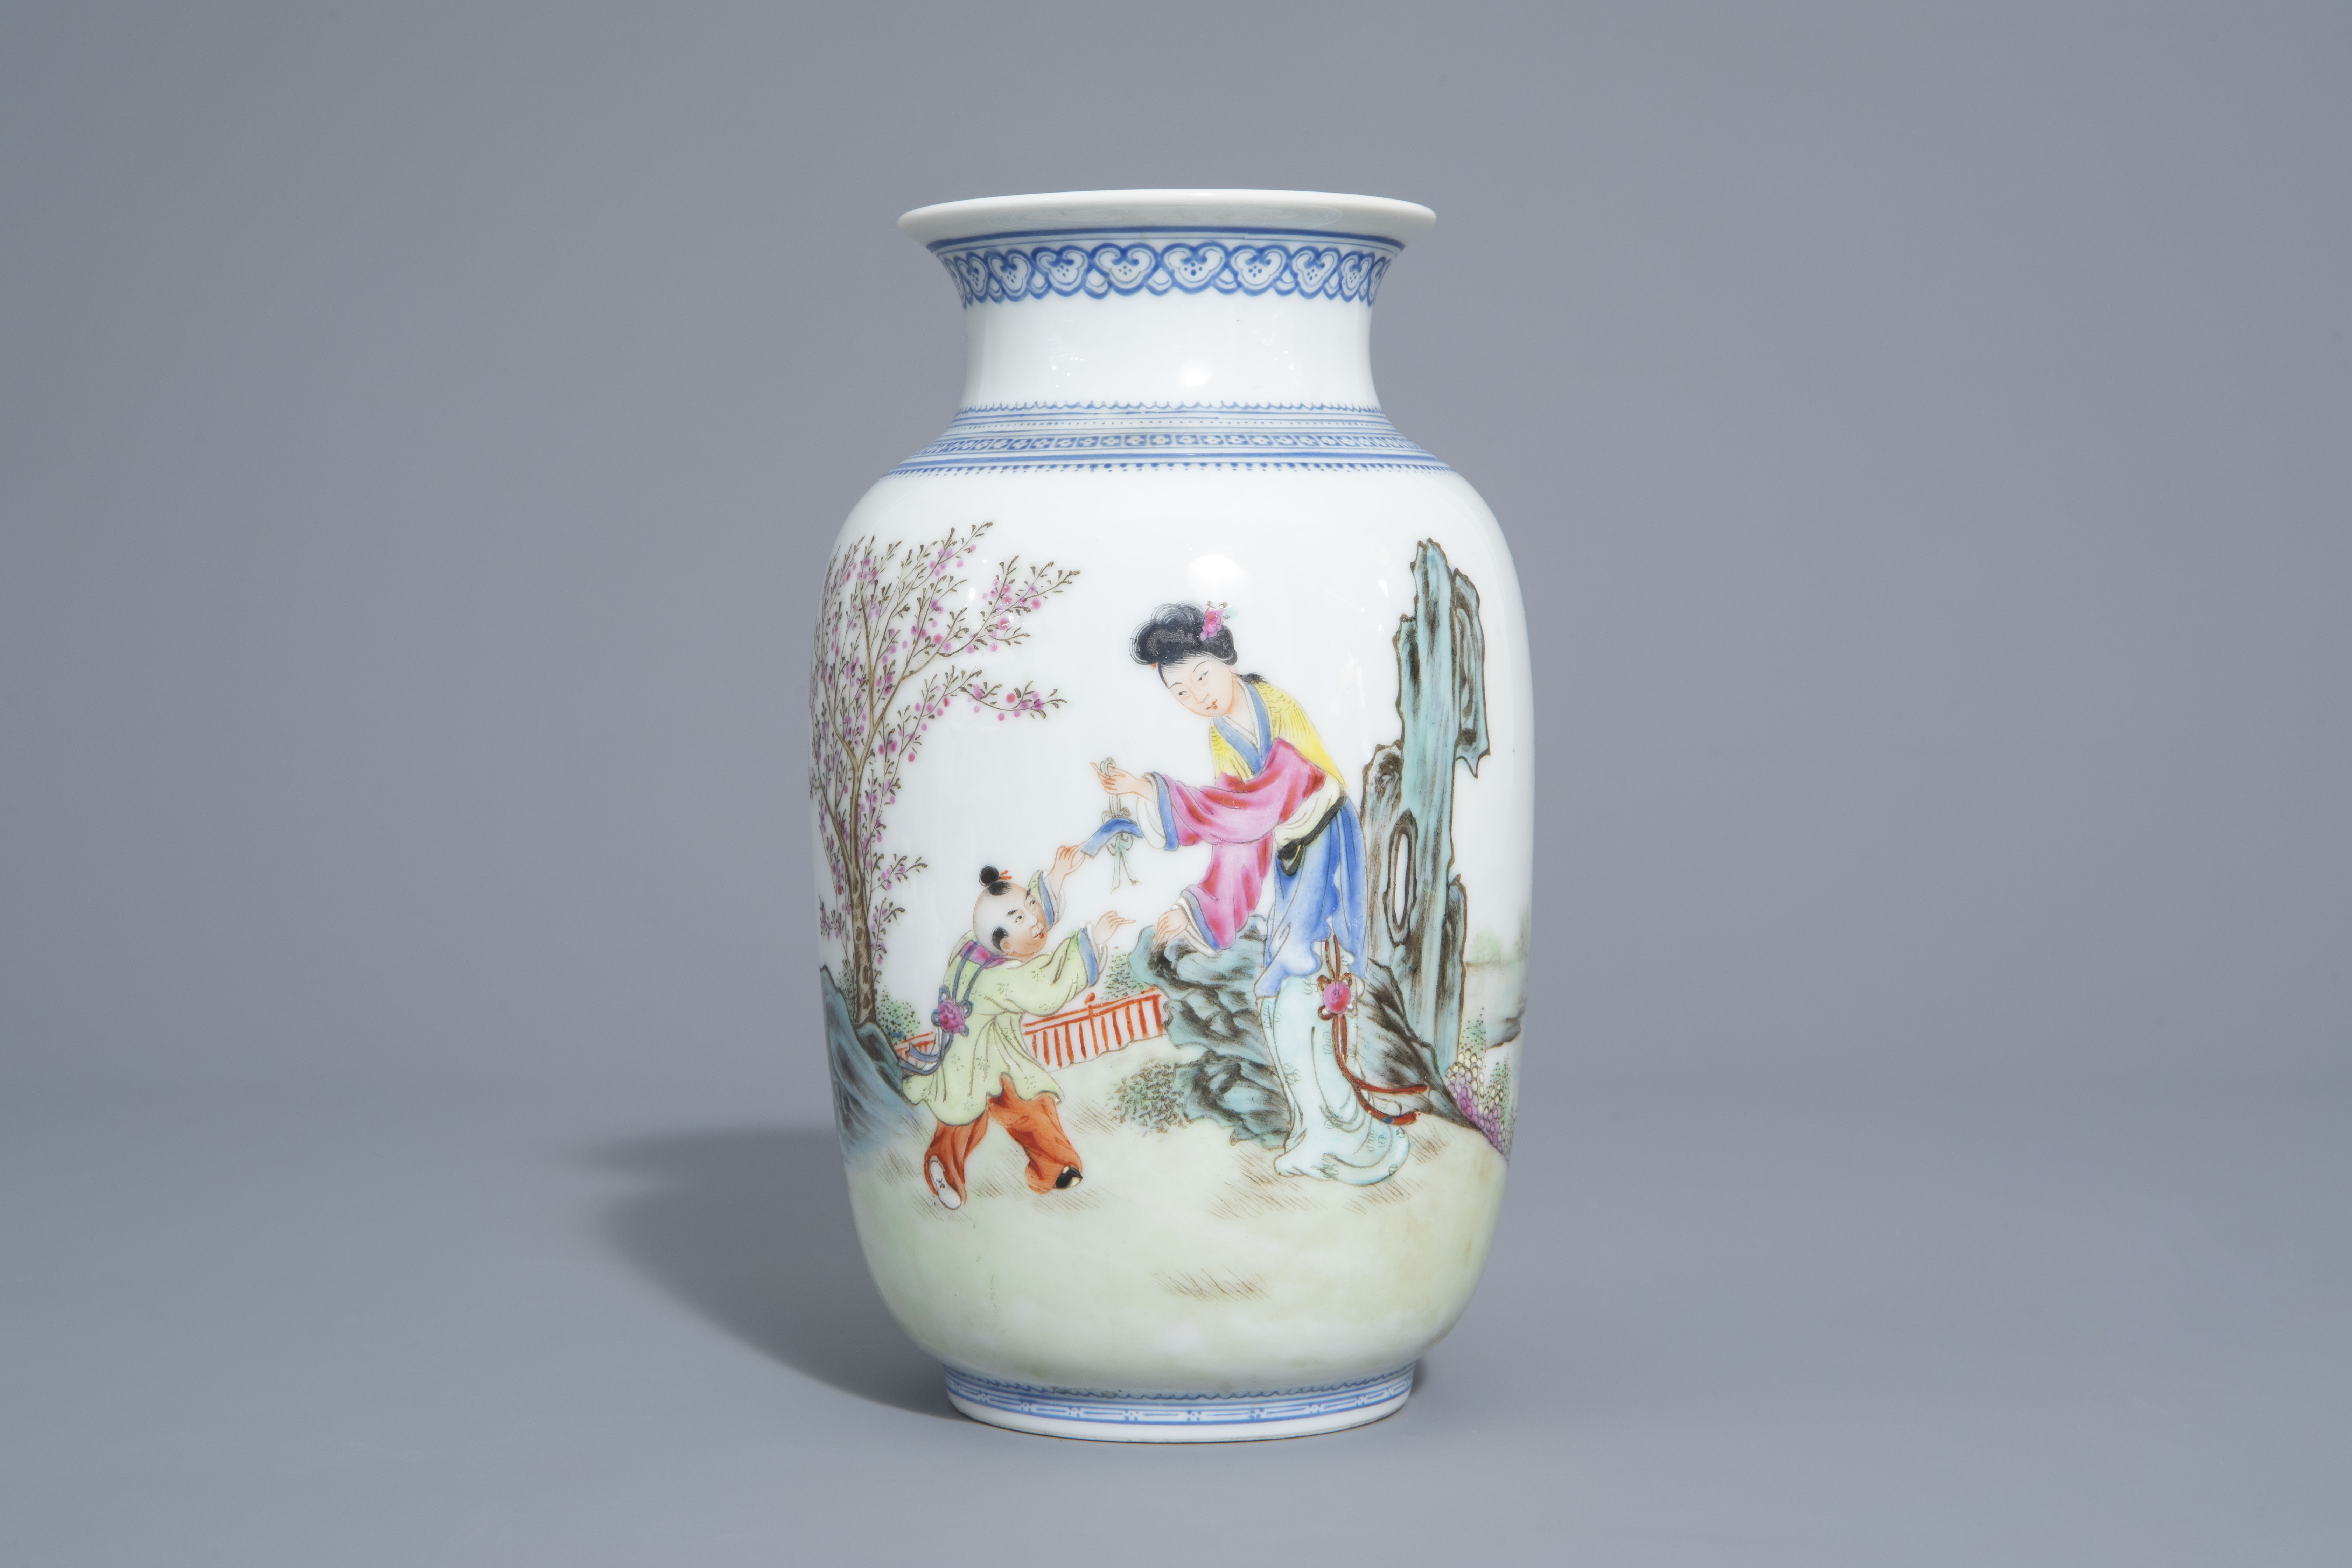 A Chinese famille rose eggshell vase and six 'Wu Shuang Pu' covers, 19th/20th C. - Image 4 of 18